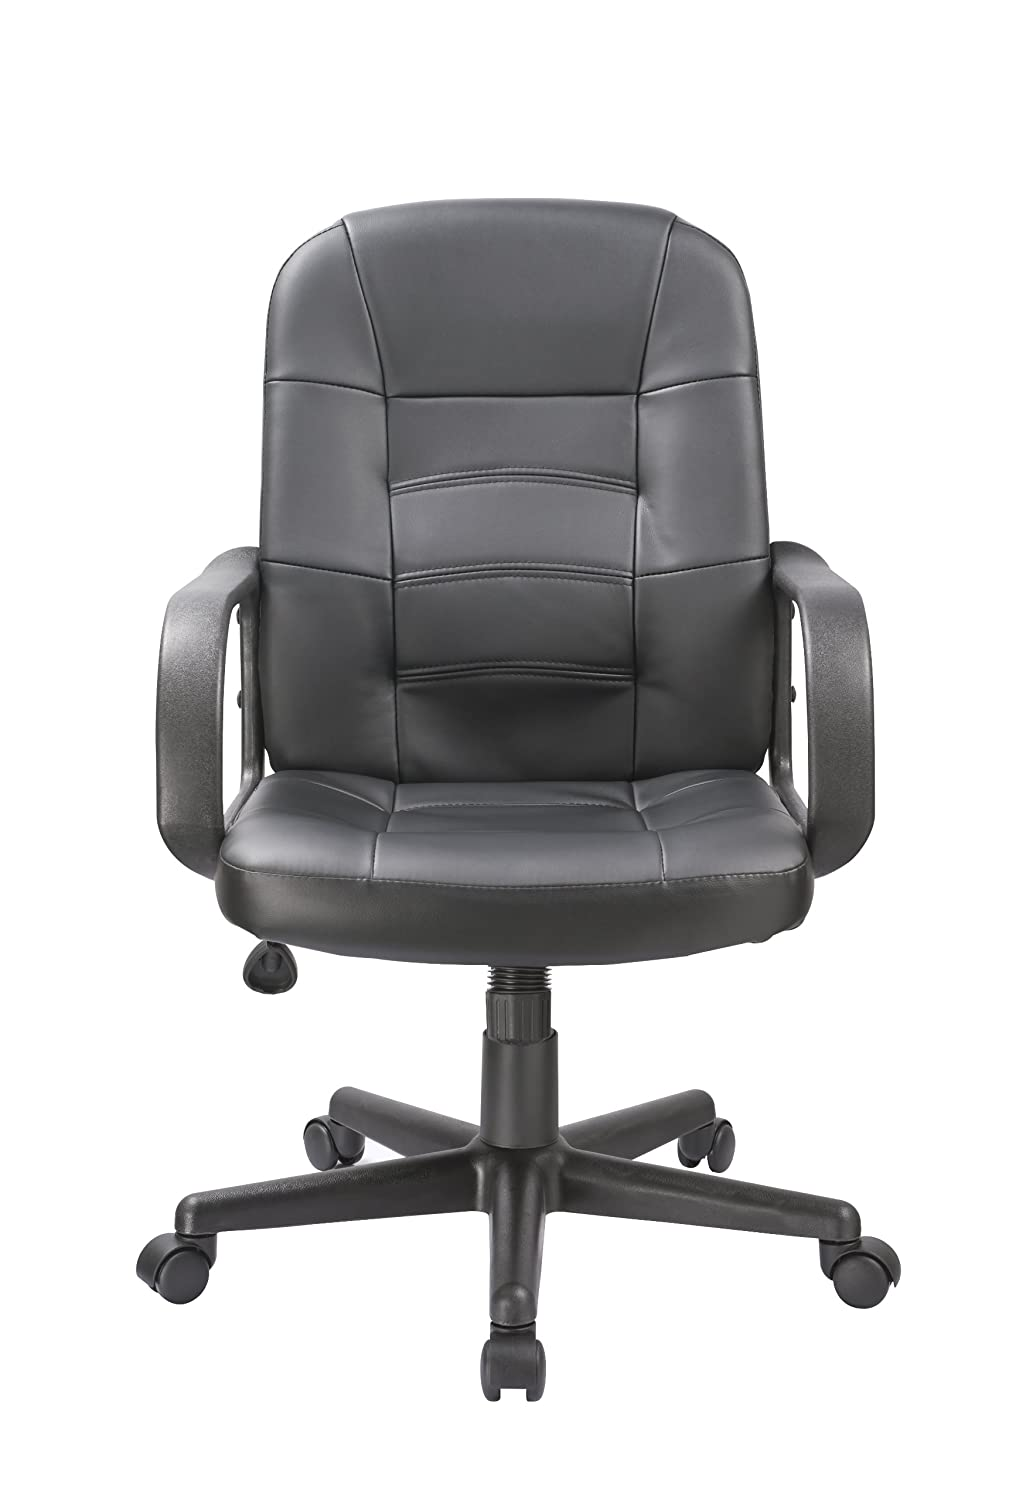 OFFICE FACTOR Bonded Leather Black Office Chair, Desk Chair, Ergonomic Office Chair, Swivel Office Chair with Caster Wheels